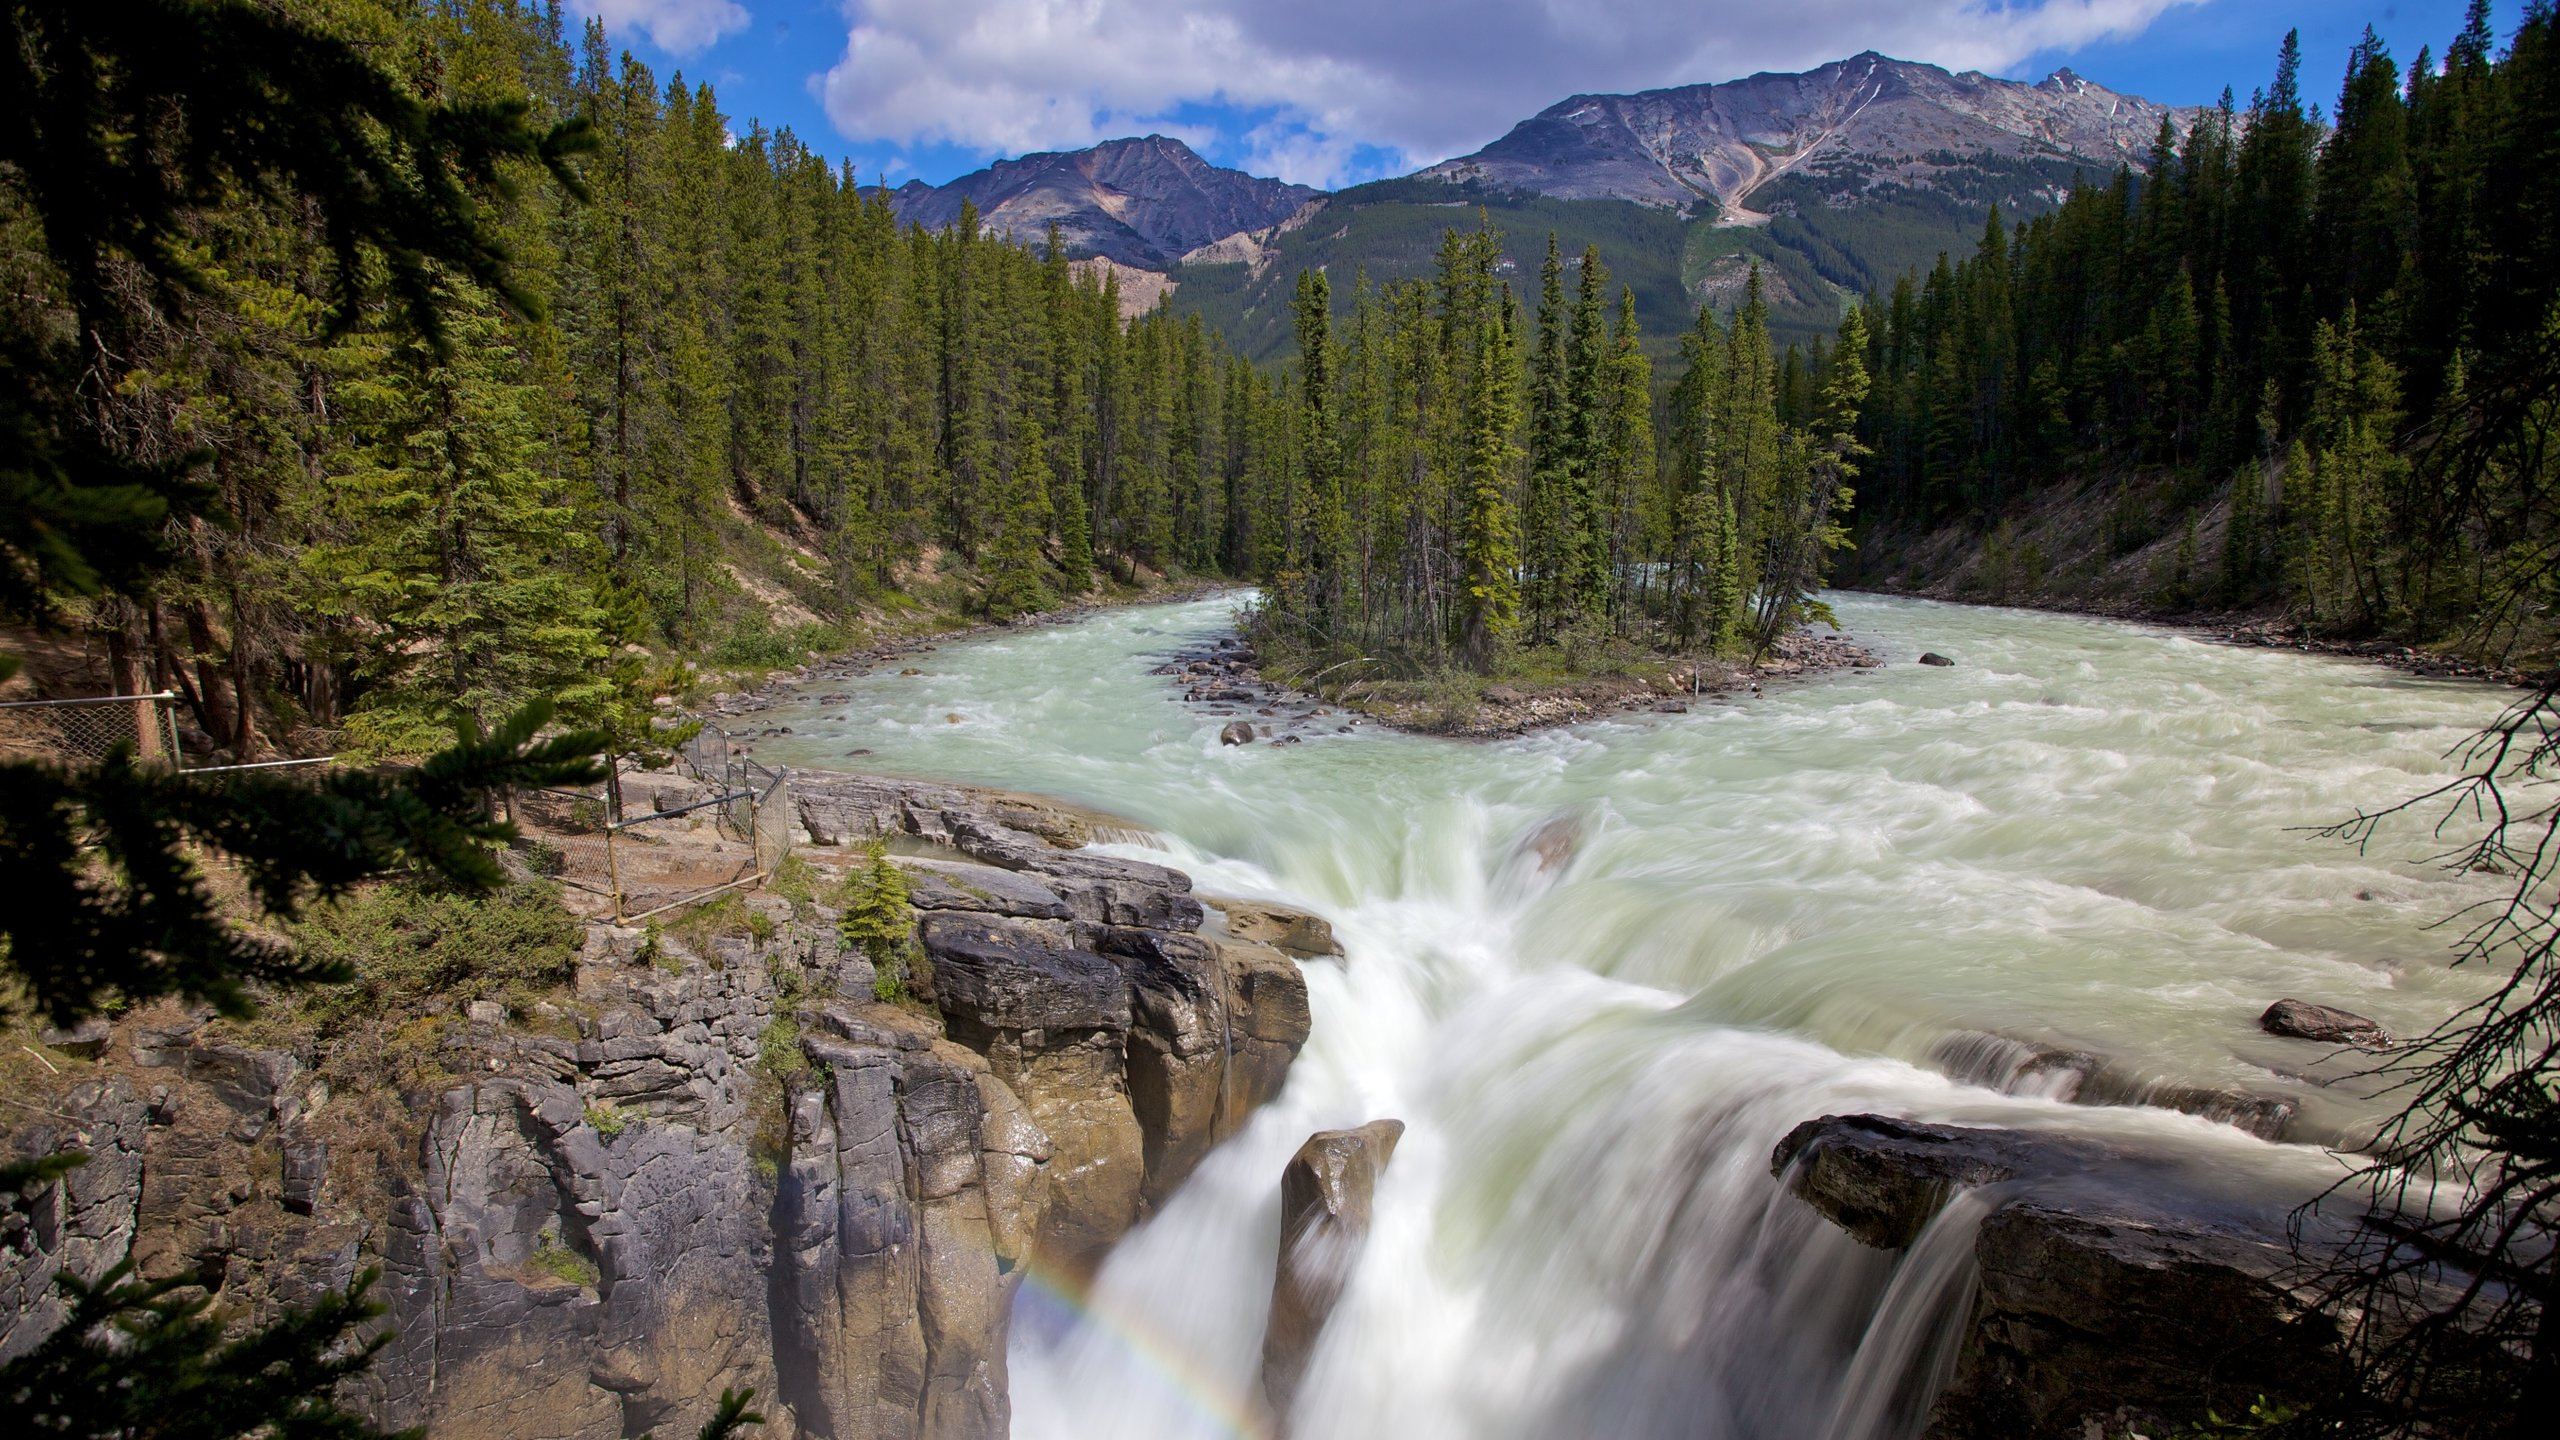 Visit one of the most impressive waterfalls in the Canadian Rockies. Moose and grizzly bears roam the area, so be prepared for amazing wildlife encounters!